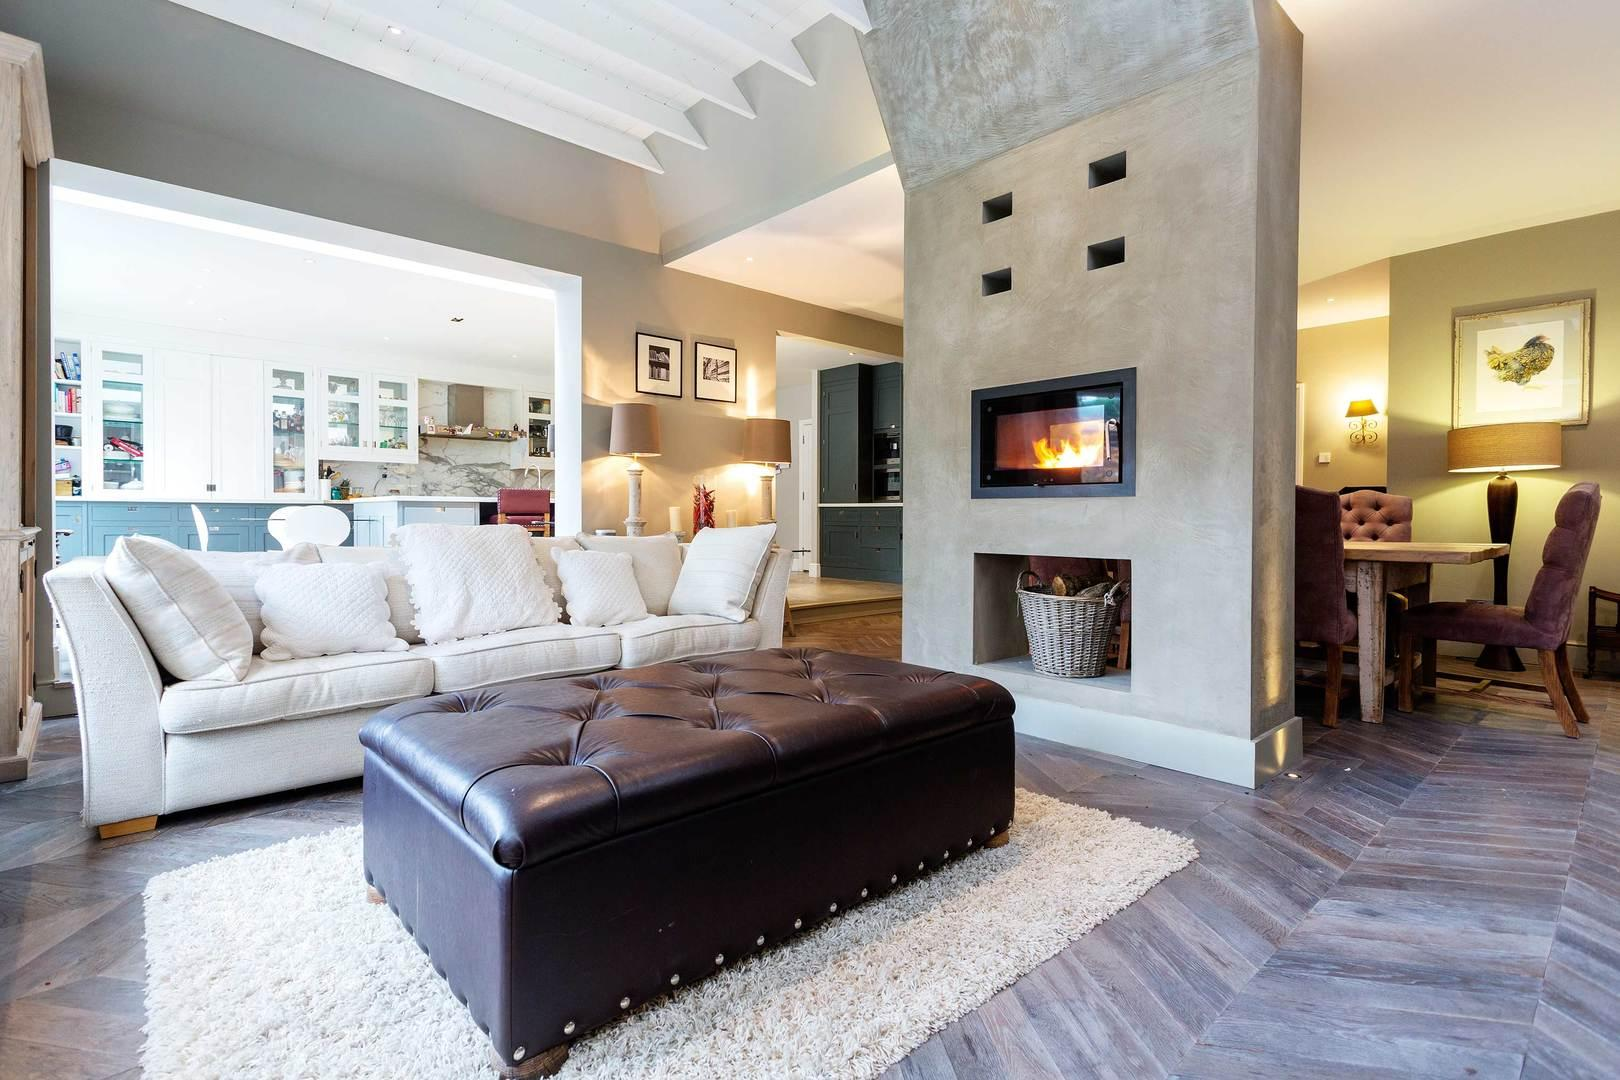 Property Image 1 - Ultra Stylish Wimbledon Home with Spacious Interior